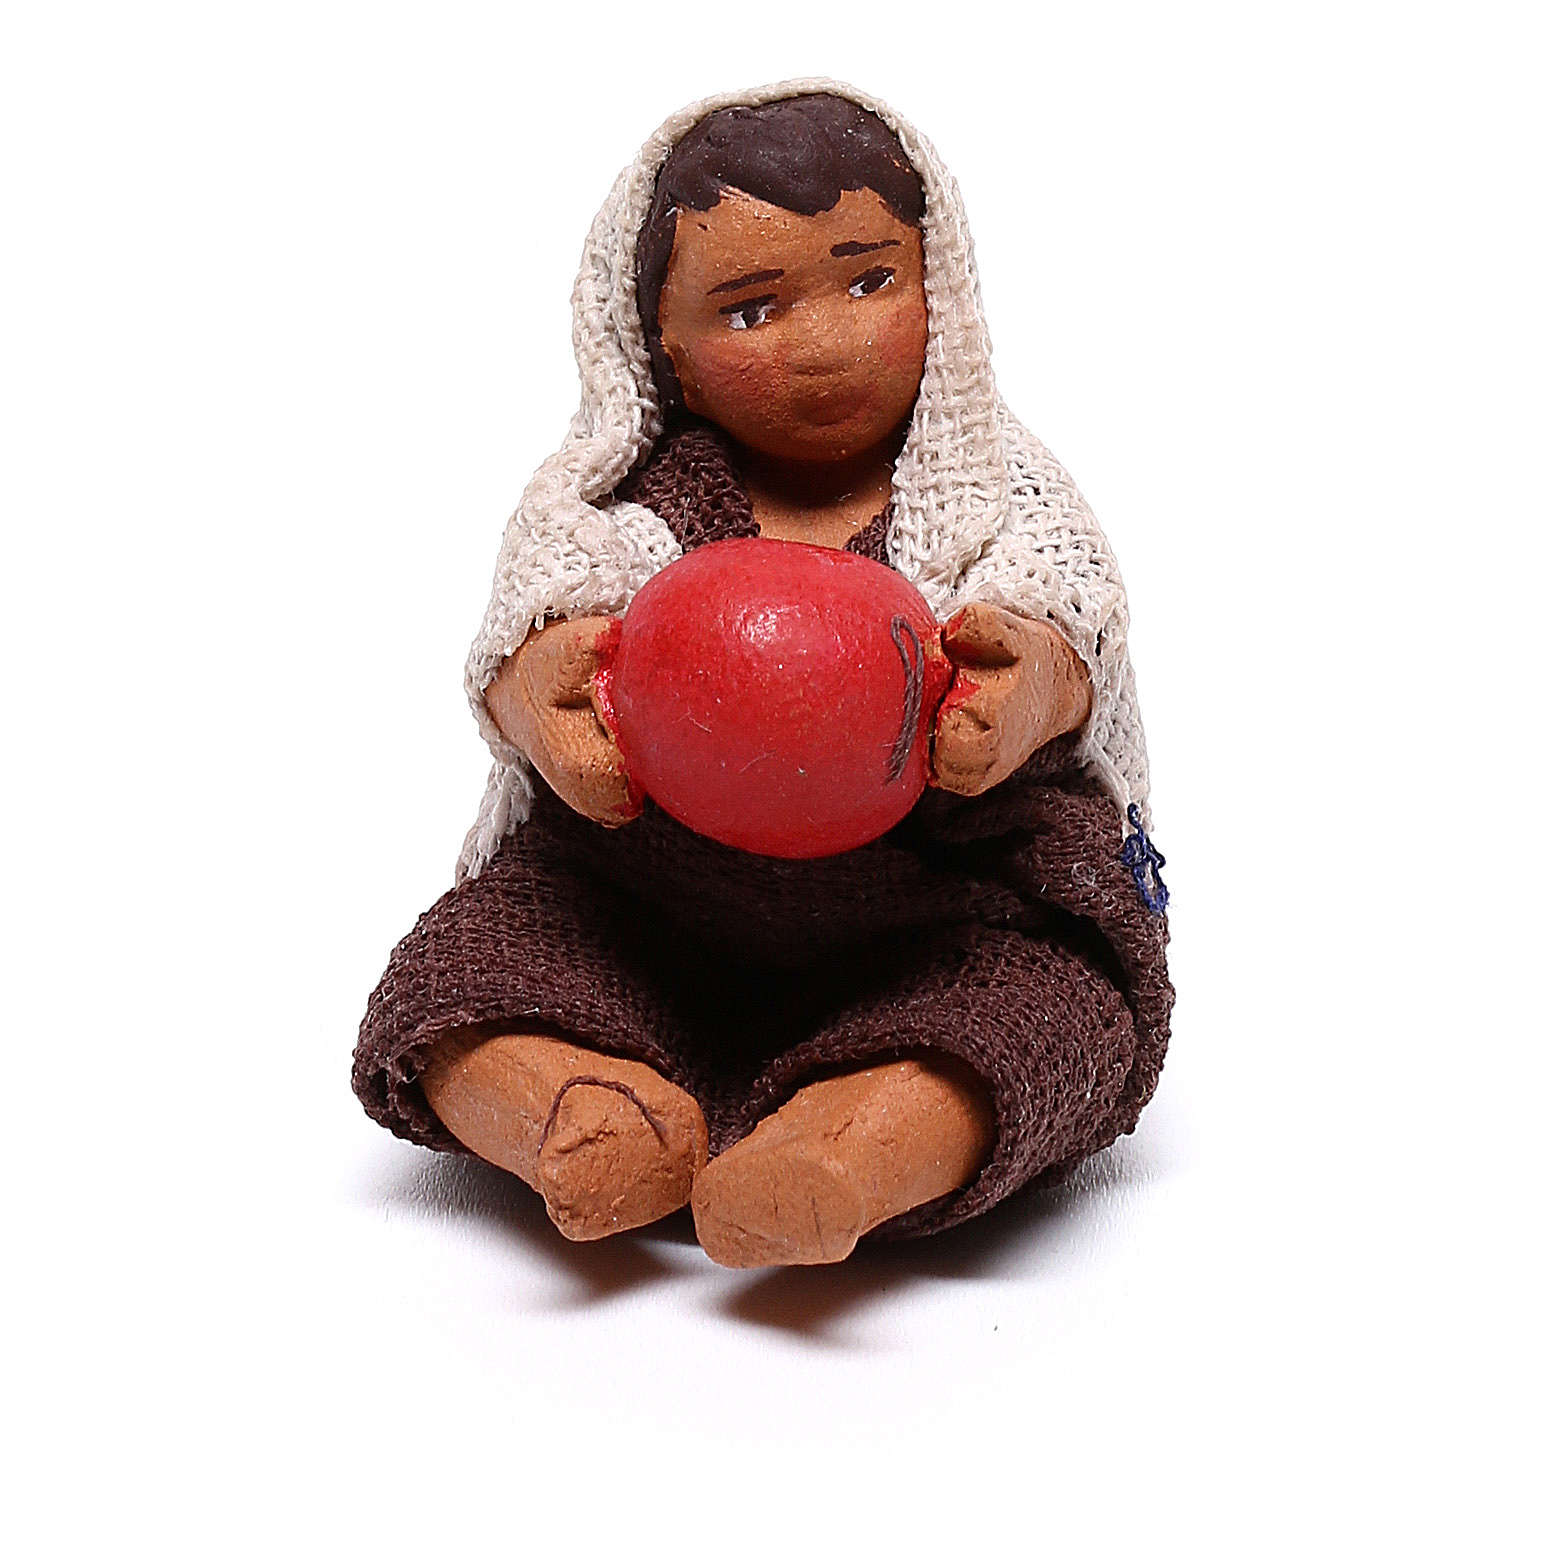 Little boy sitting with ball 10cm neapolitan Nativity 4